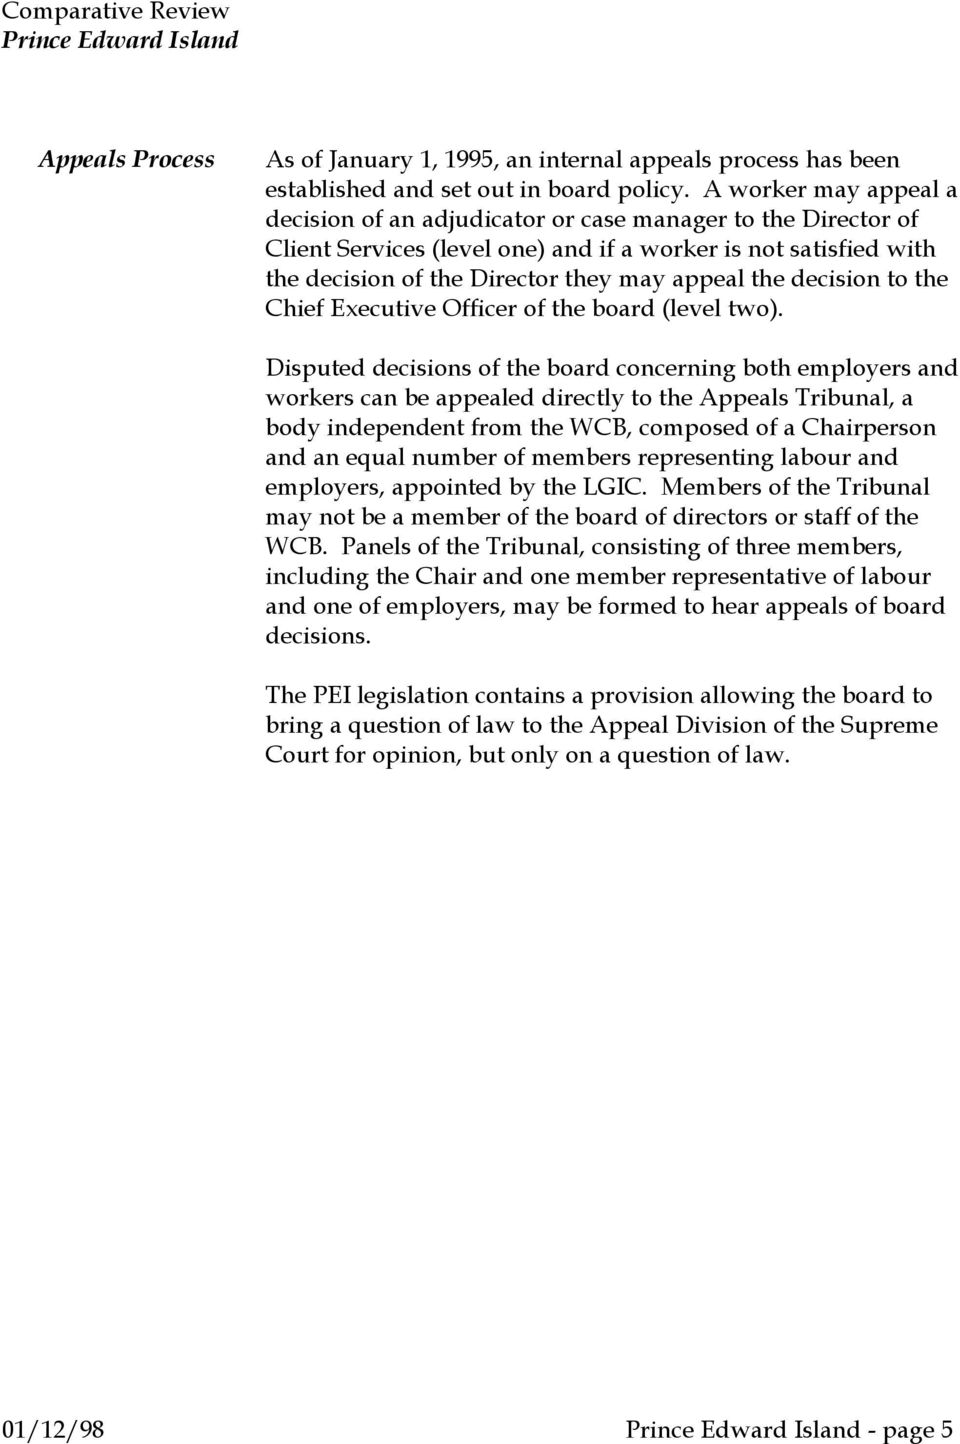 decision to the Chief Executive Officer of the board (level two).